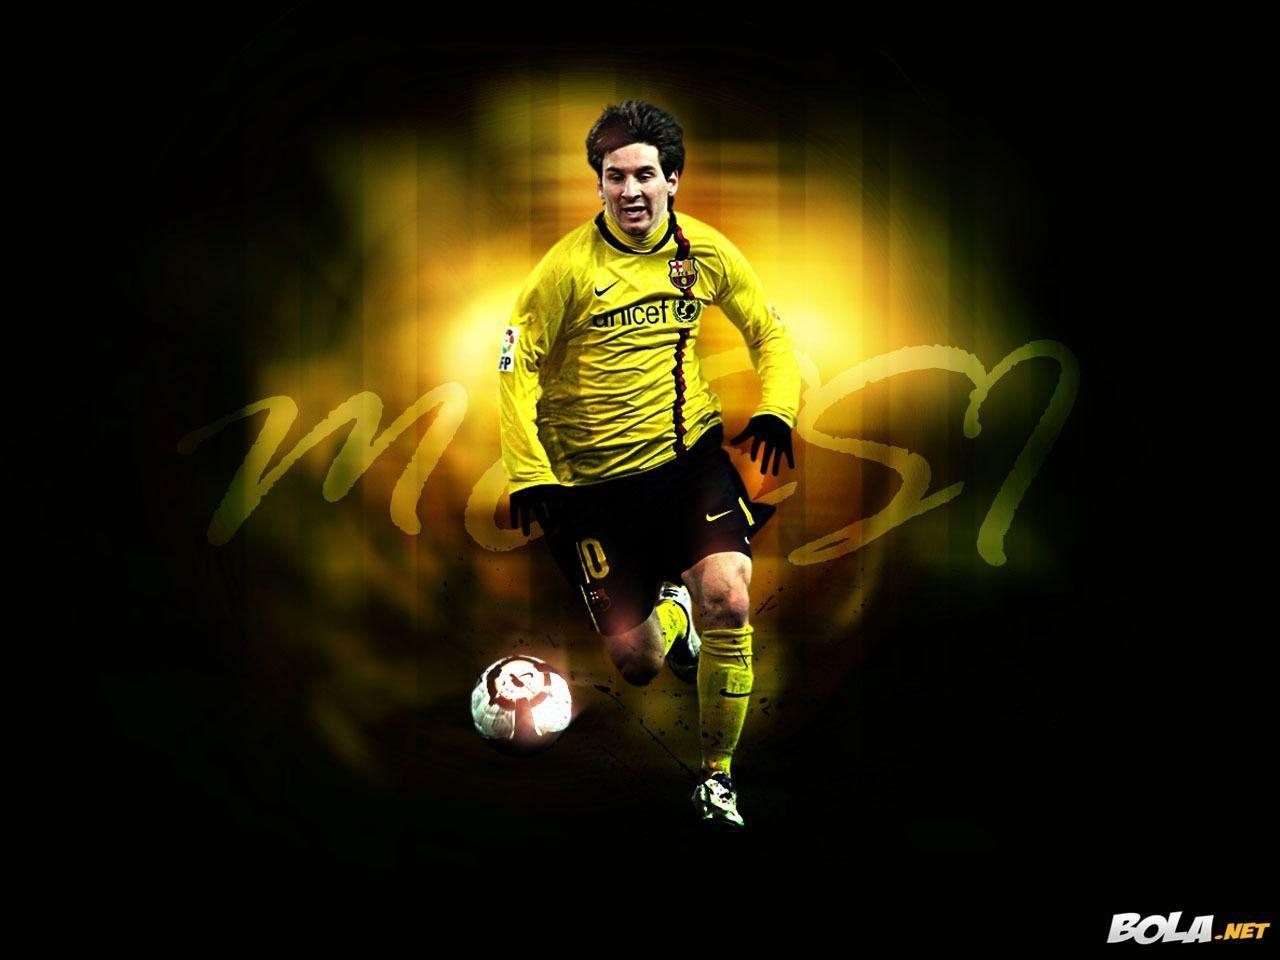 Lionel Messi HD Wallpaper 2014 (yellow) - Football Wallpaper HD ...